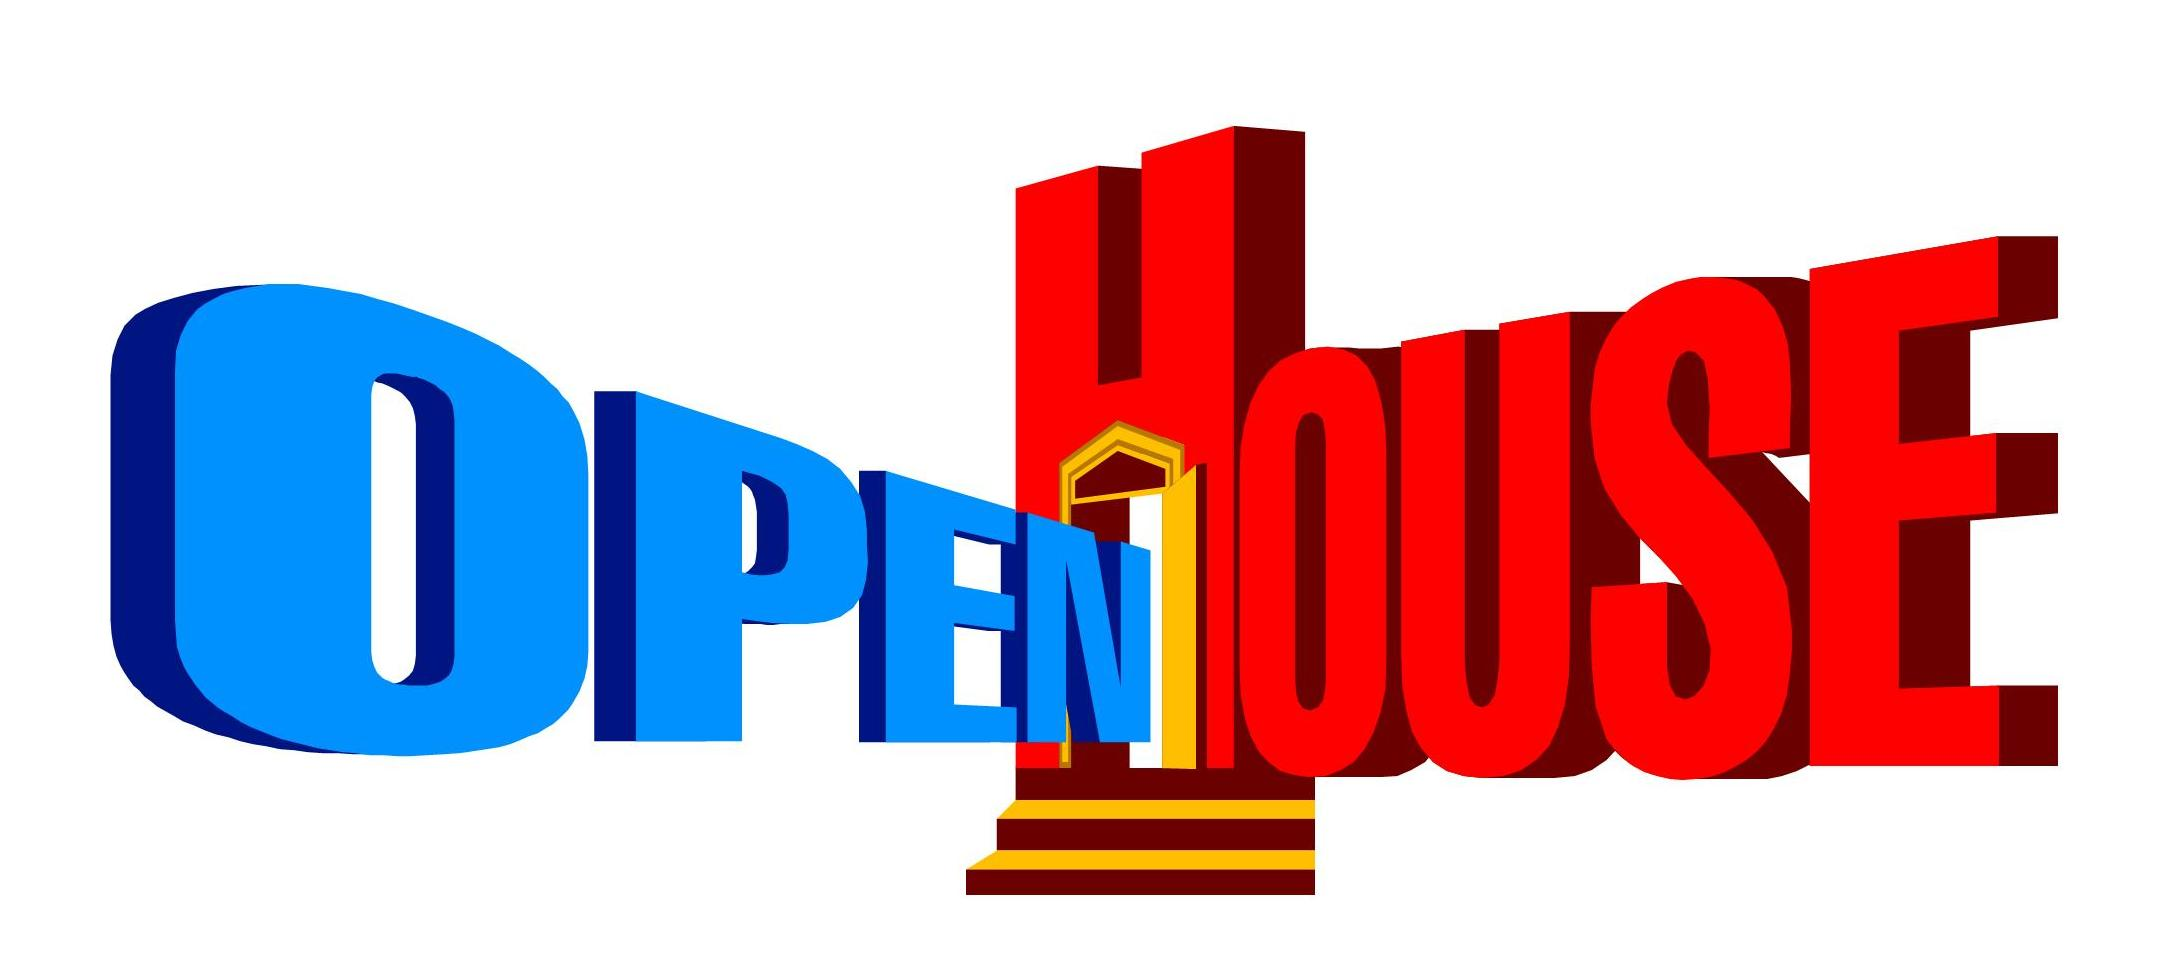 School open house clipart free images 3.